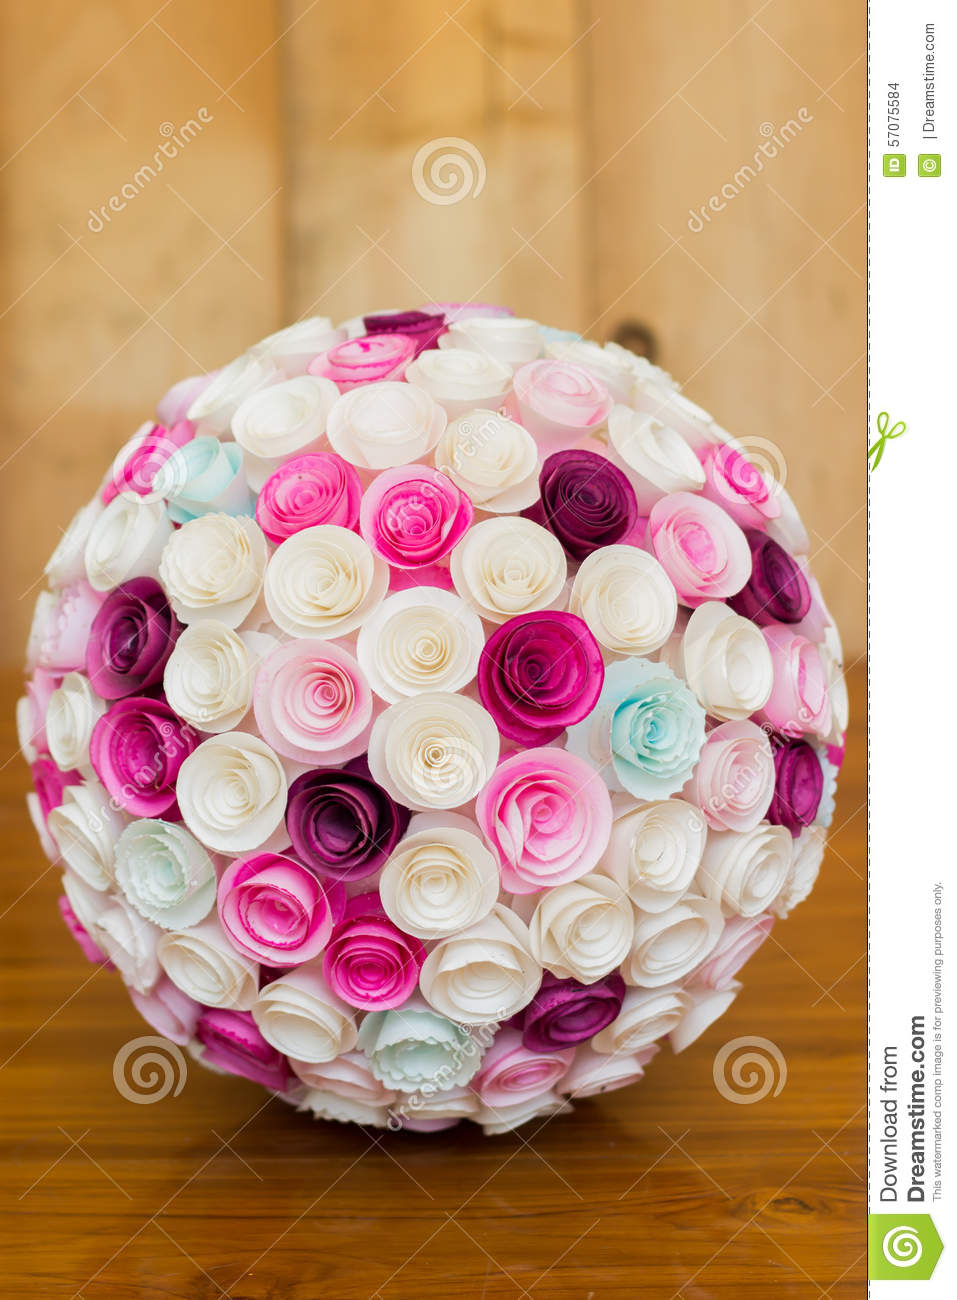 Paper flowers ball stock photo image of natural background 57075584 download comp mightylinksfo